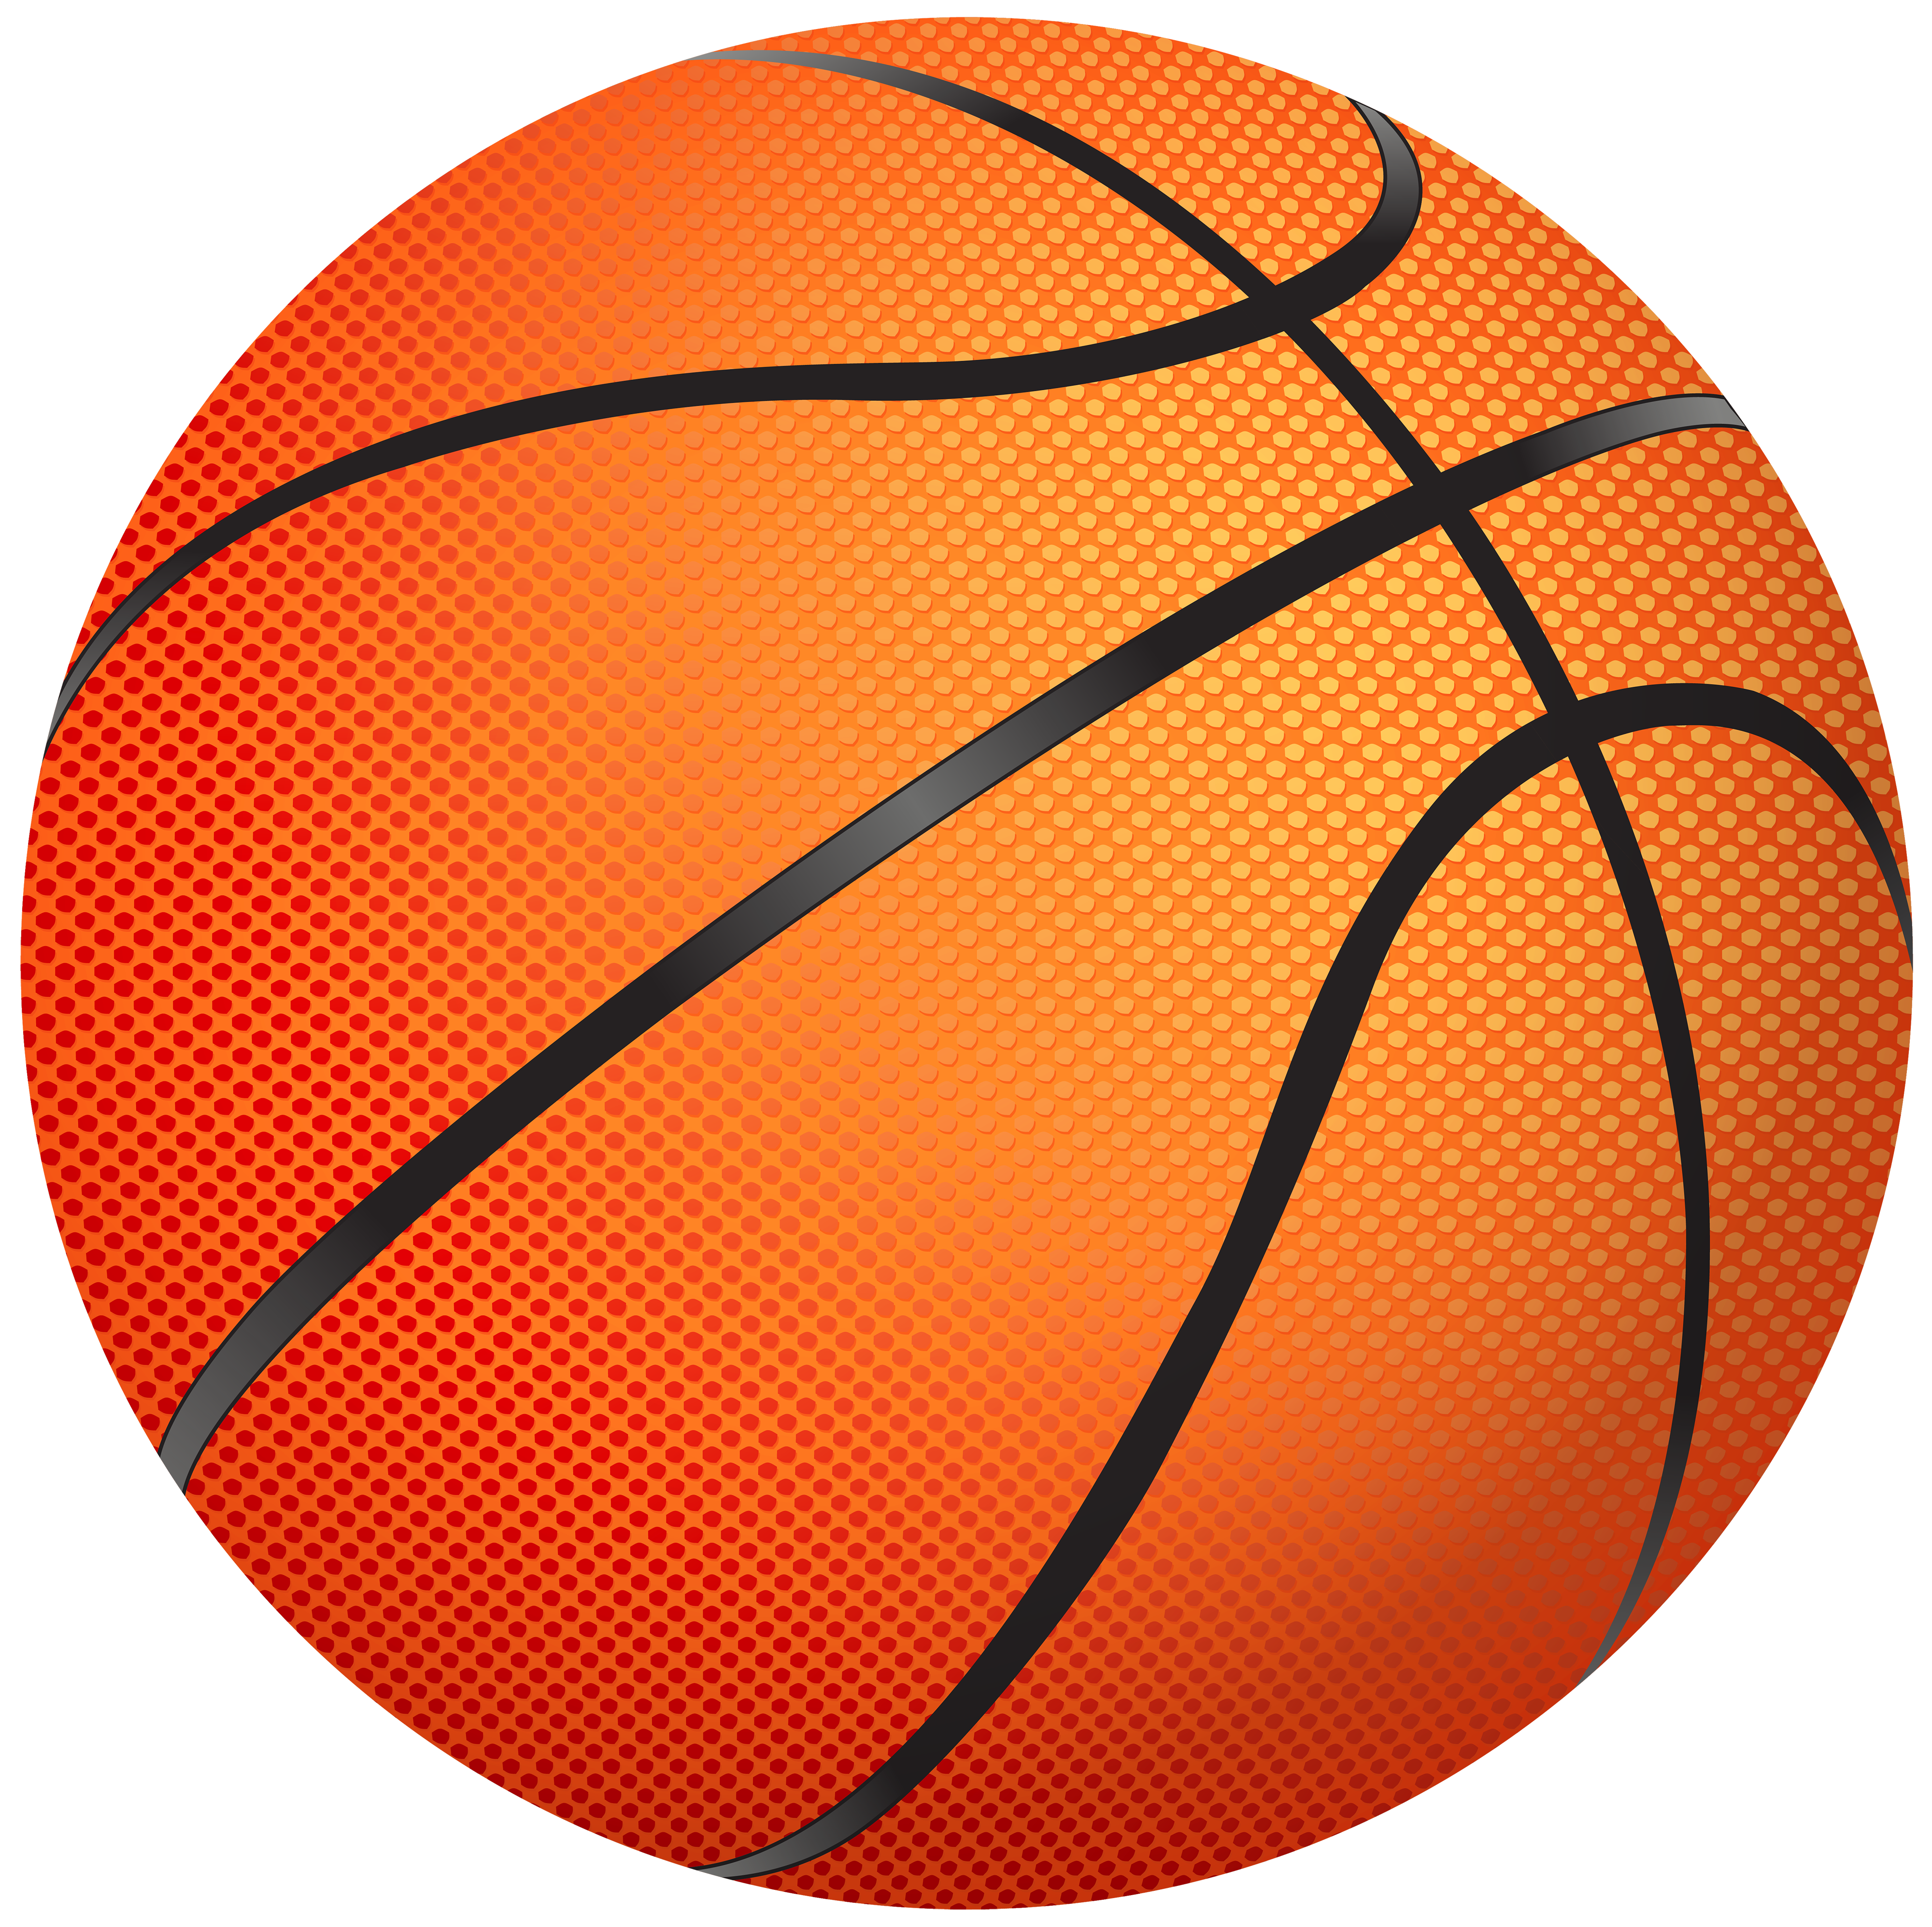 Distressed basketball and net clipart vector black and white download Basketball Png Clipart | jokingart.com Basketball Clipart vector black and white download